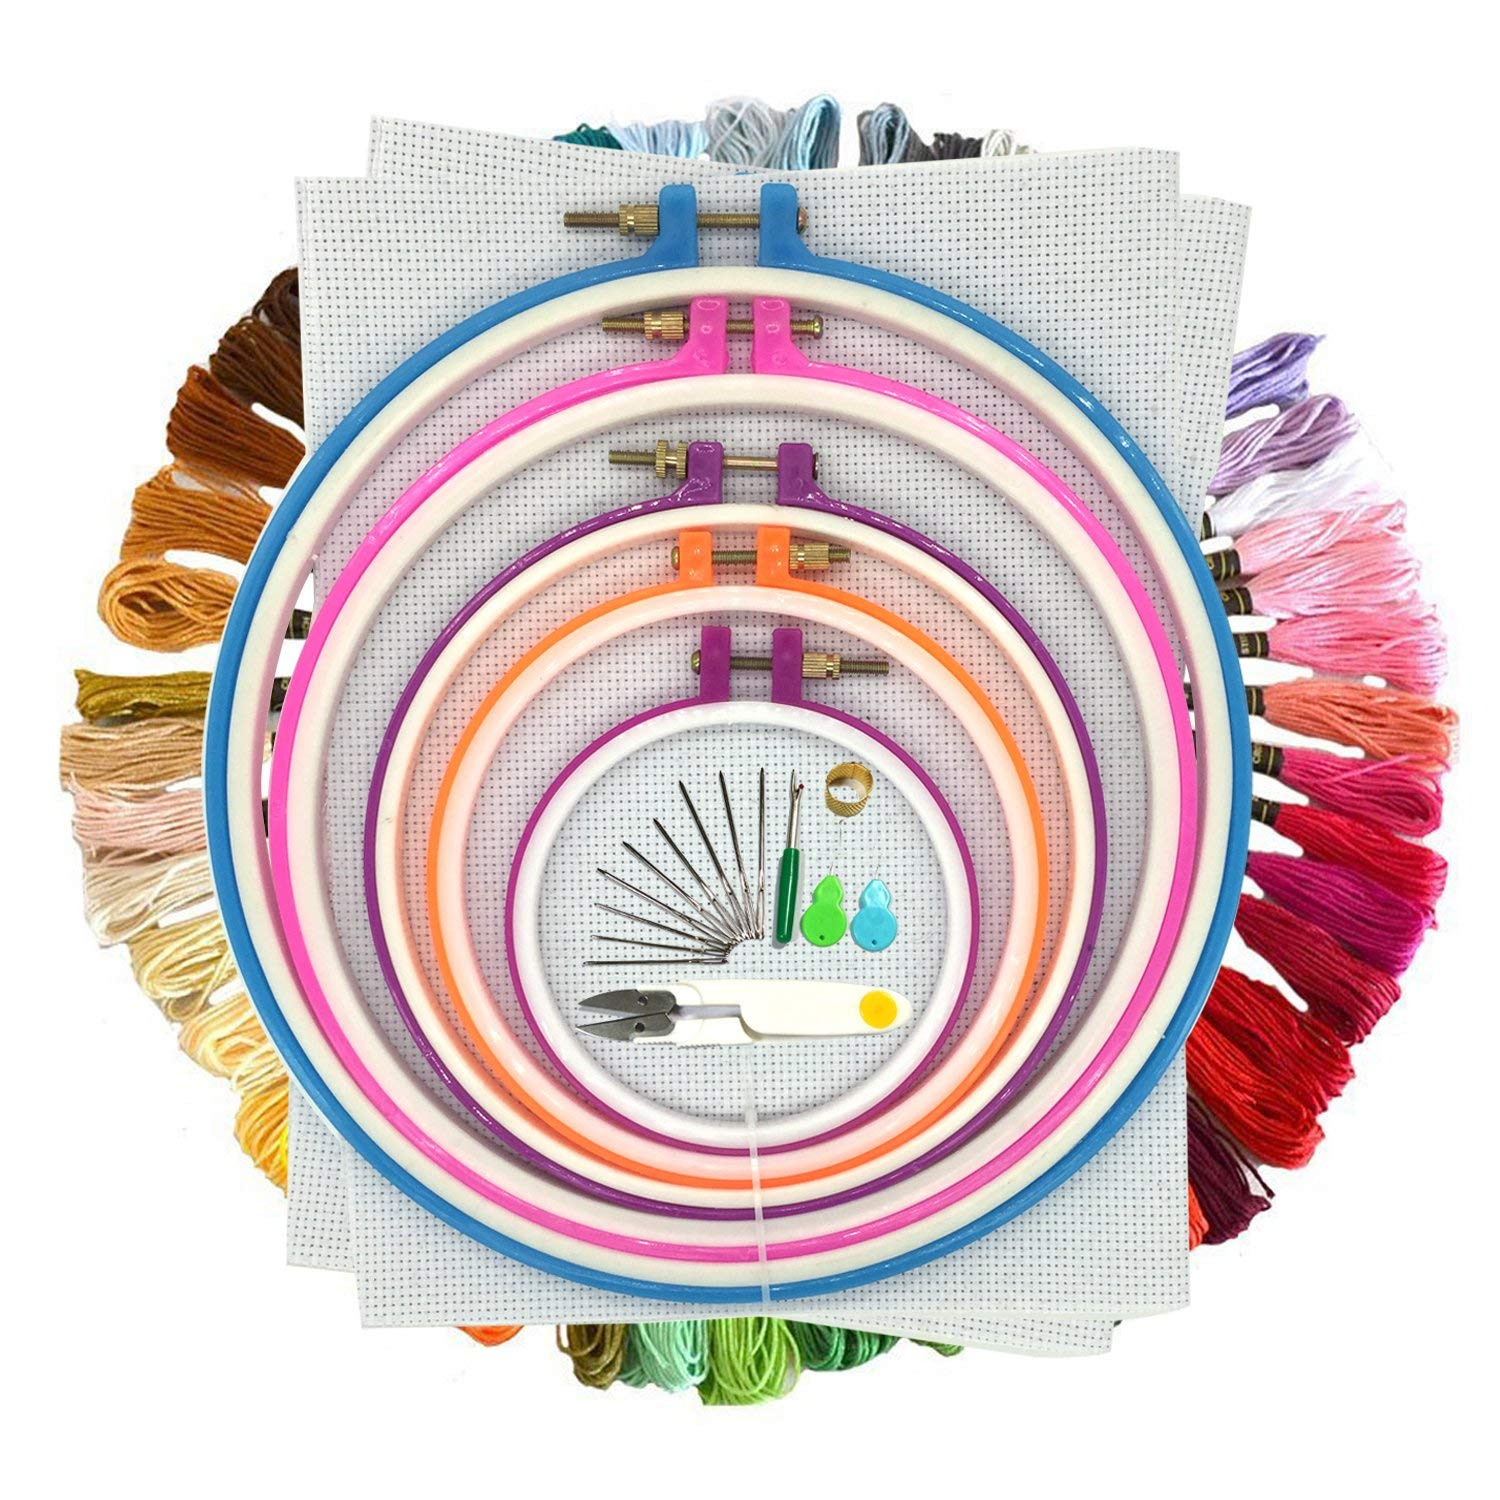 Embroidery Thread Kit Cotton Embroidery Sewing Thread Sewing Thread for Cross Stitch (Multi)